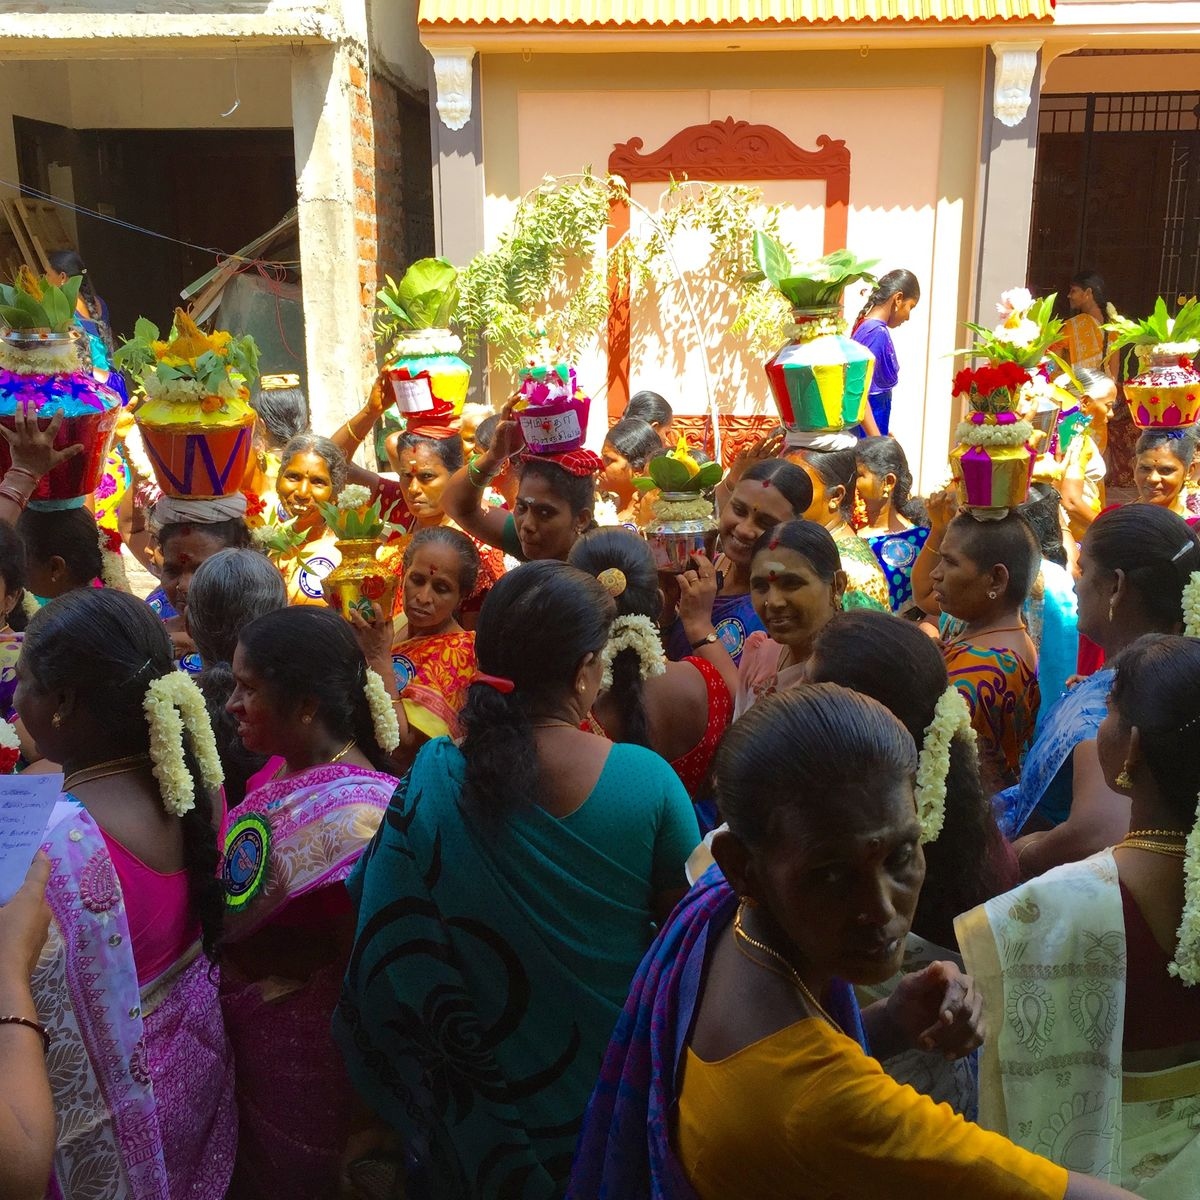 Women of Madurai marching through the streets to decry alcoholism